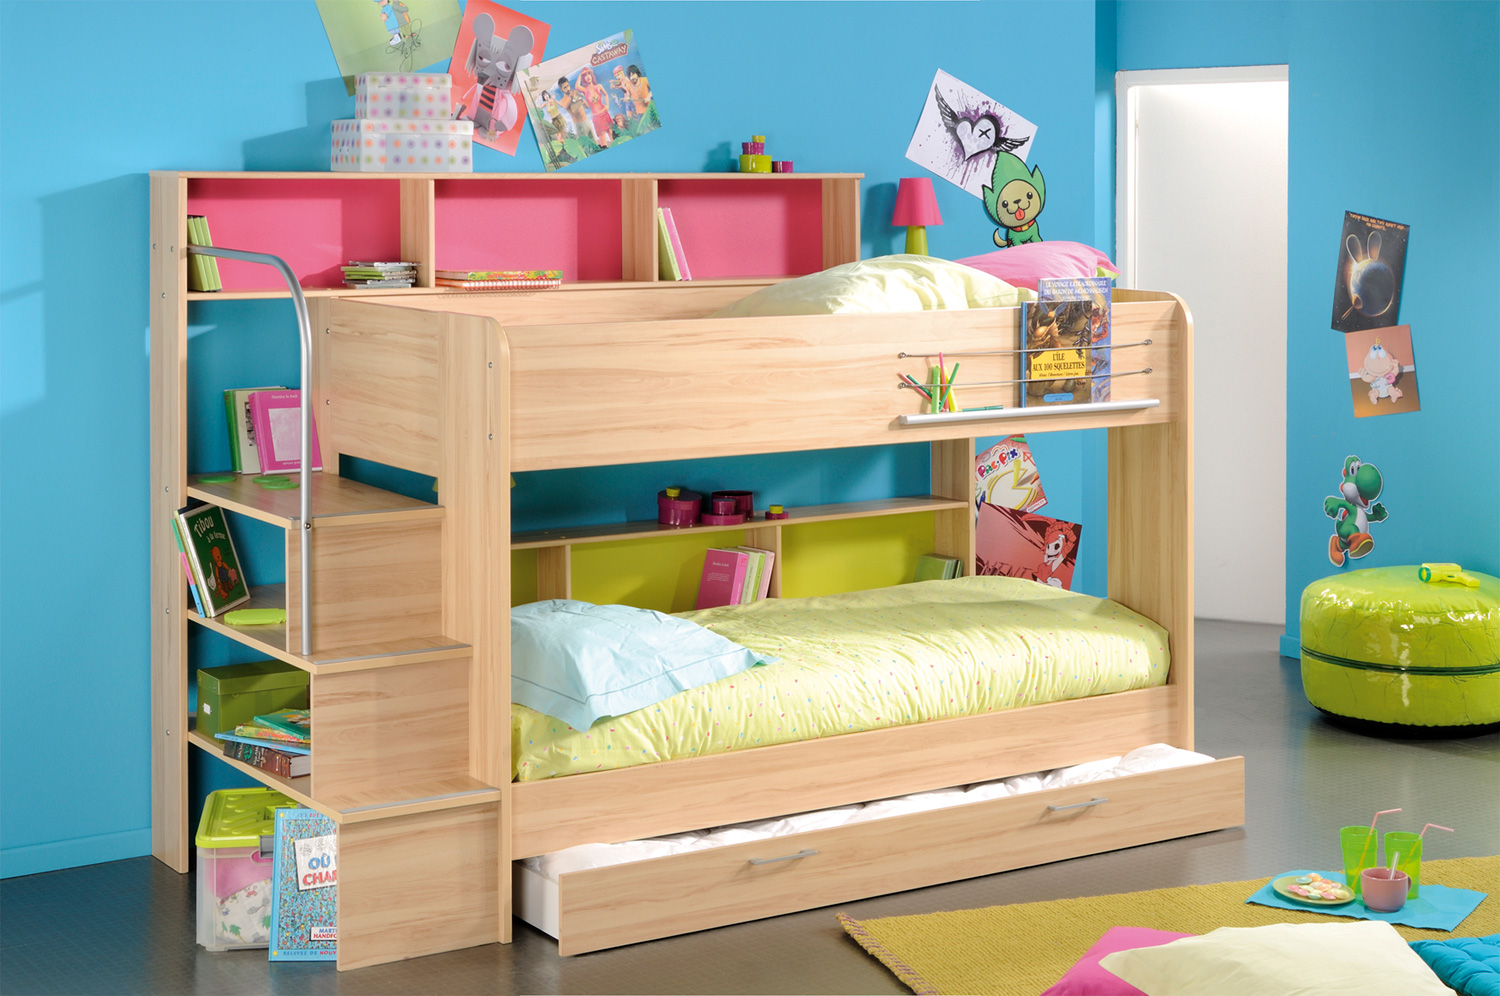 Space saving stylish bunk beds for your home for Bedroom designs small spaces philippines